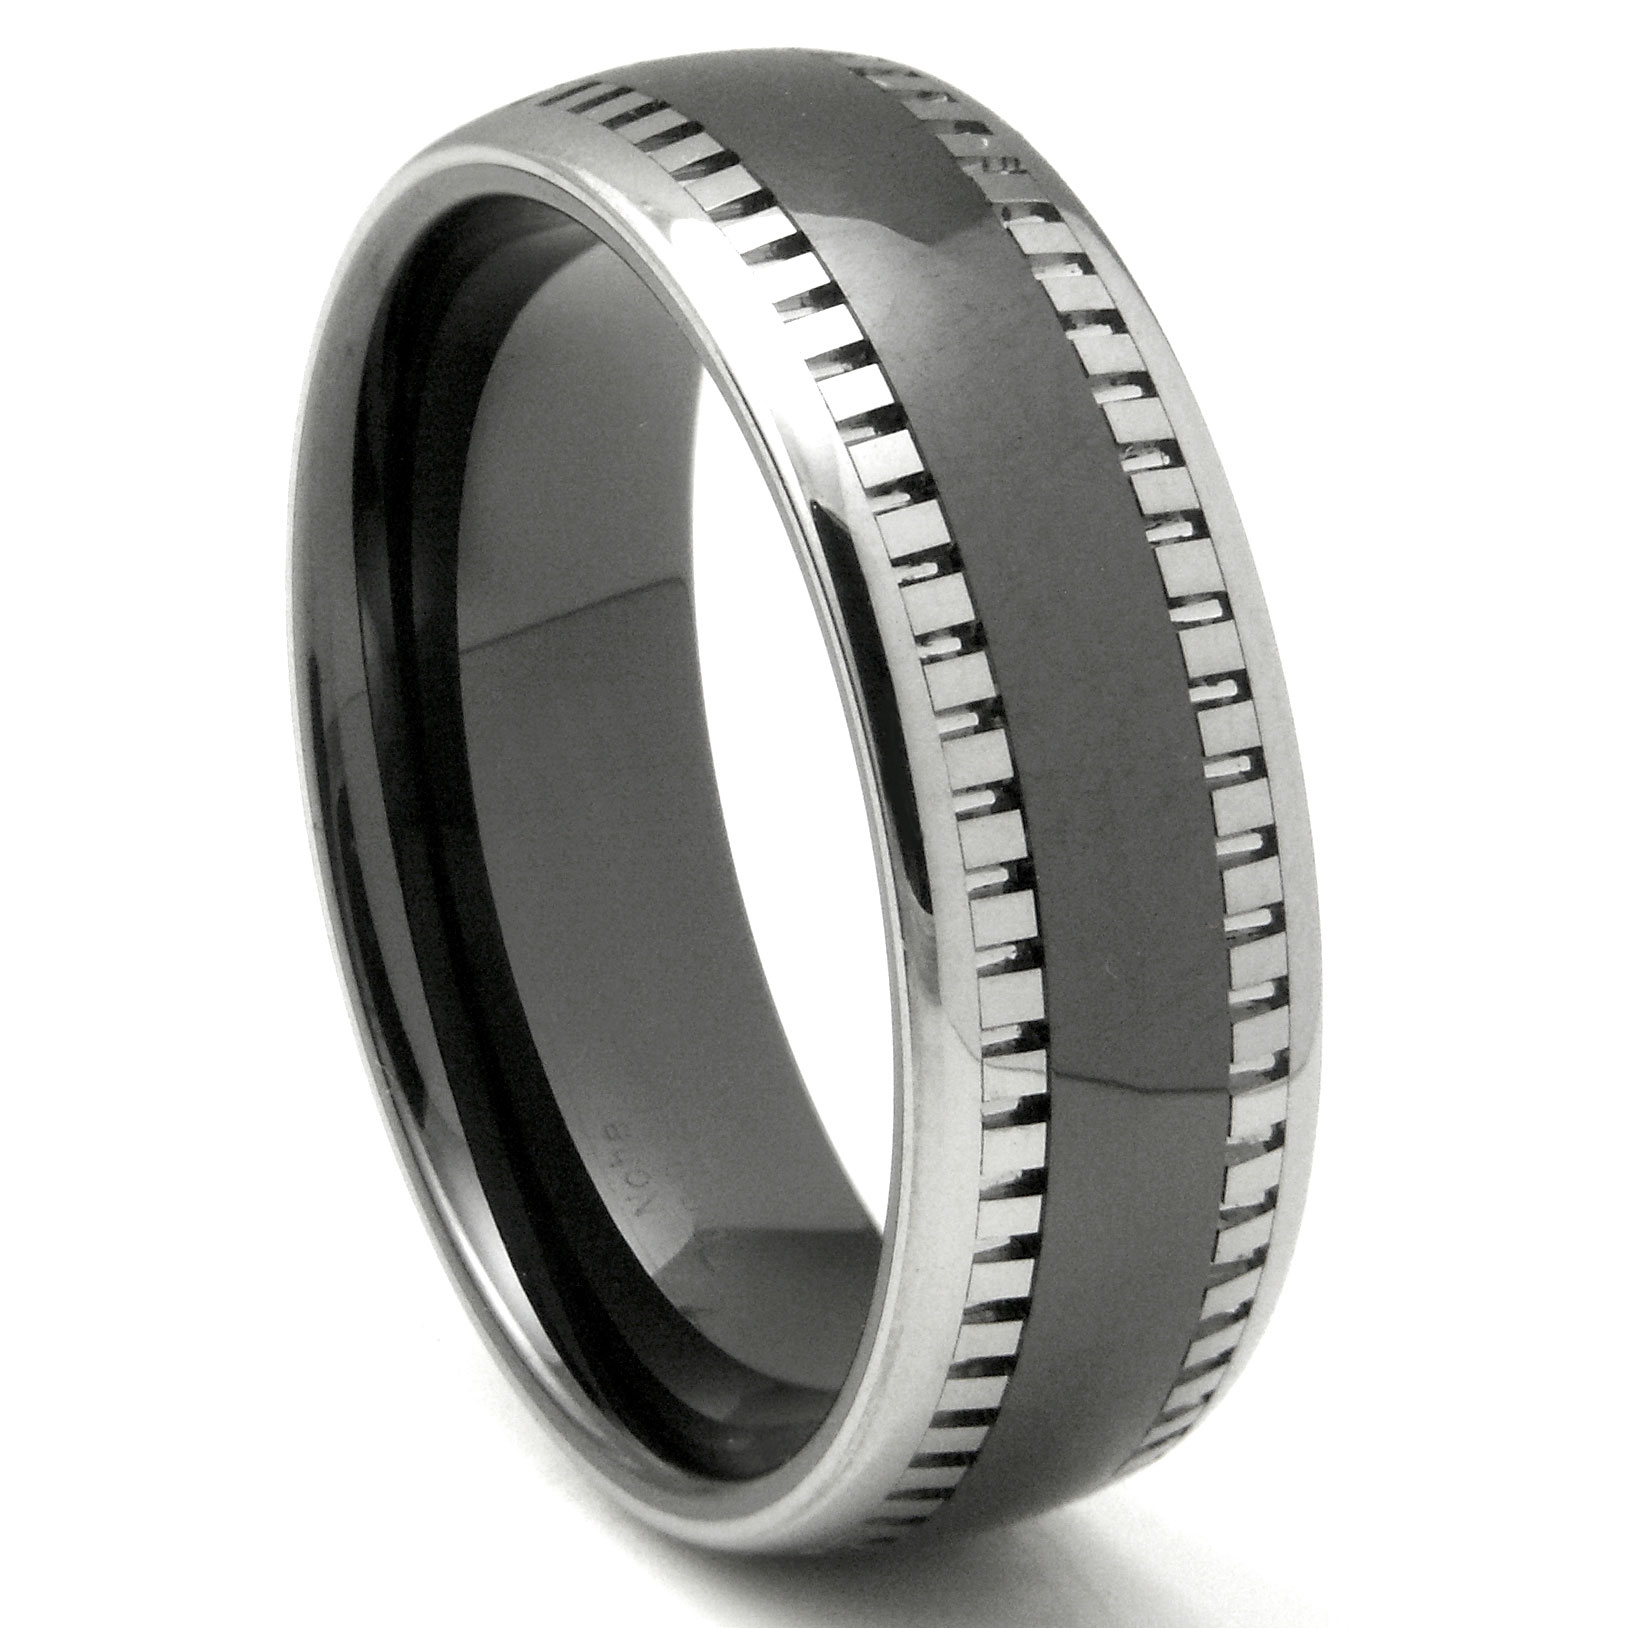 size brushed htm men tungsten women p we band carbide wedding ring rings polished